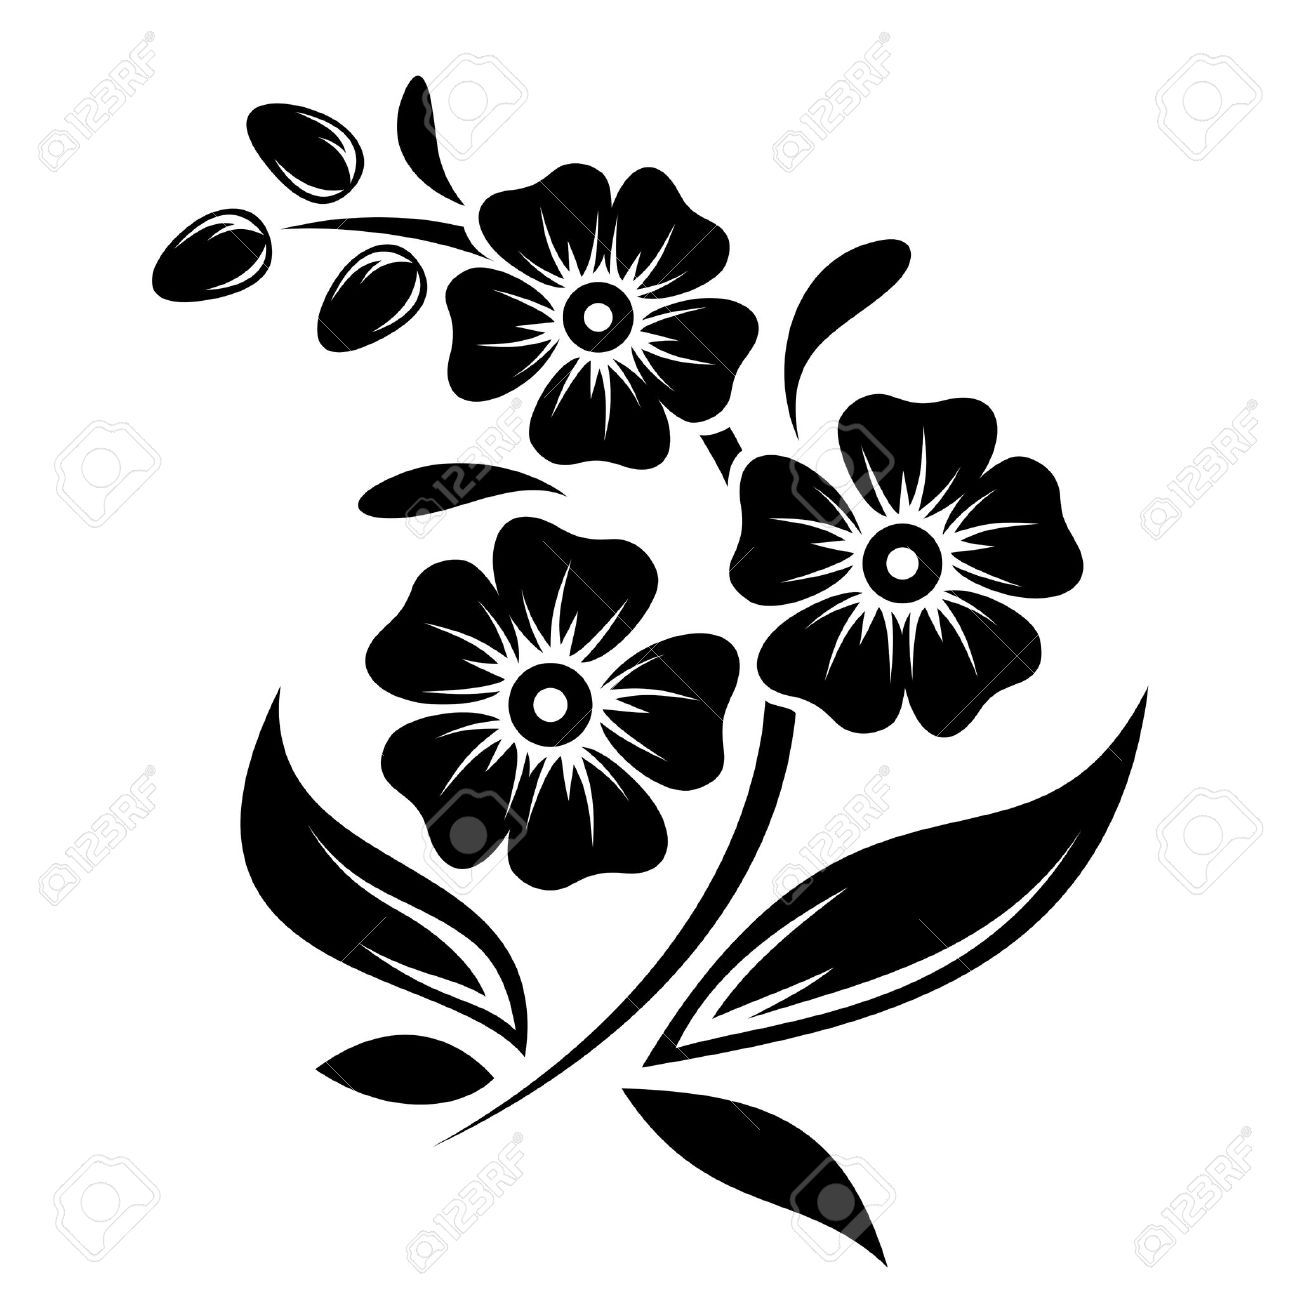 Black Silhouette Of Flowers Vector Illustration Royalty ...